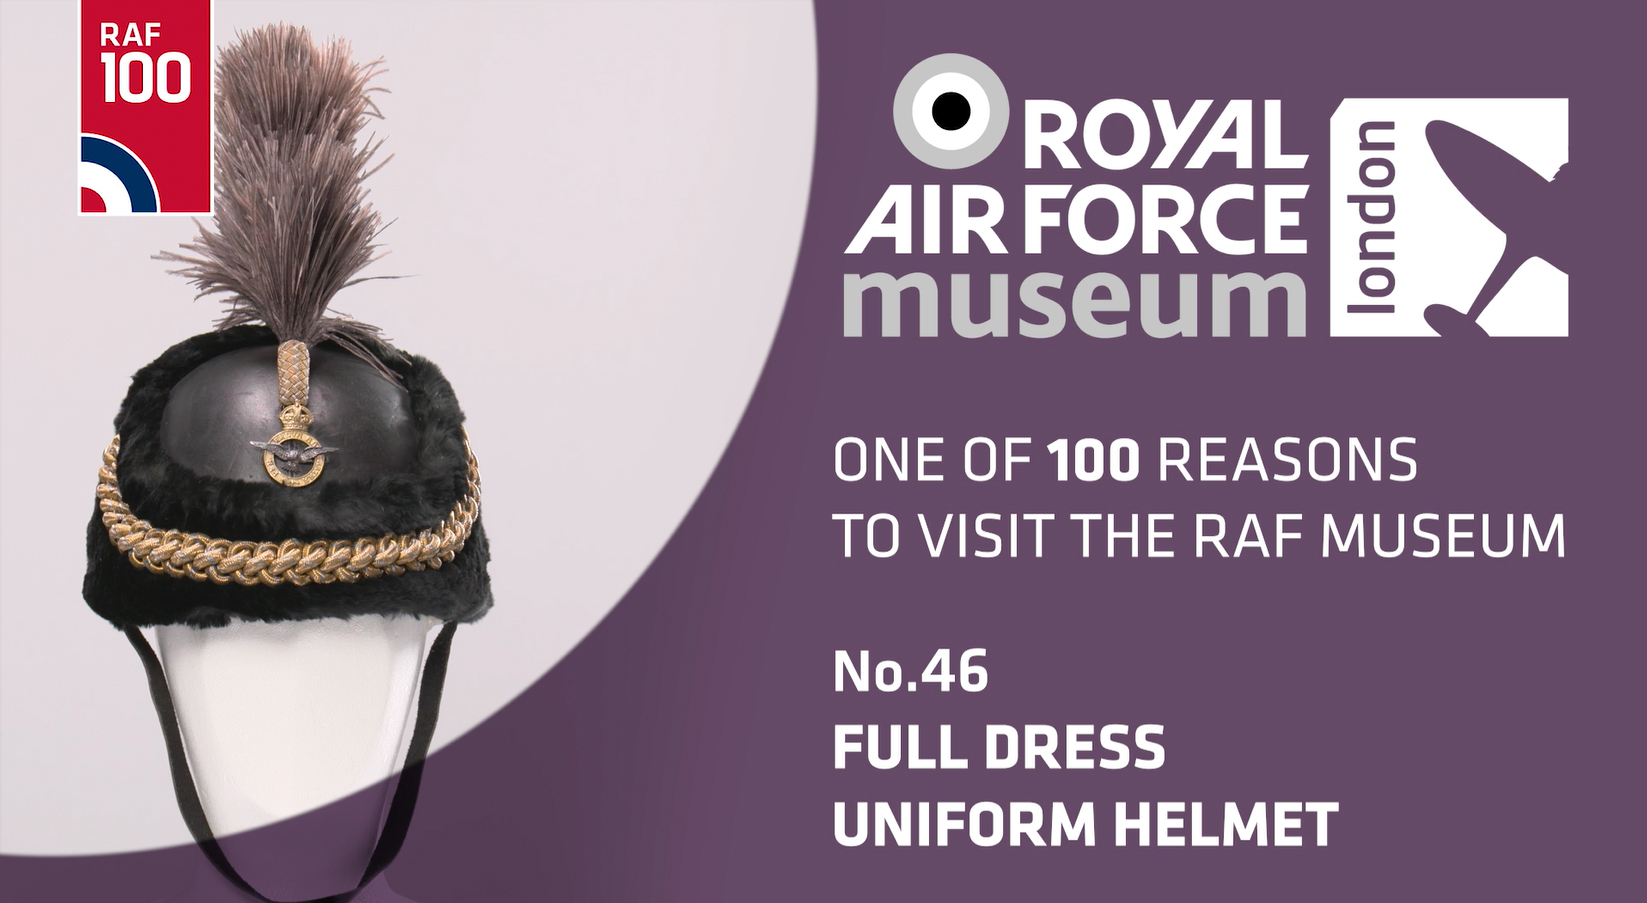 Full Dress Uniform Helmet - one of 100 reasons to visit the RAF Museum